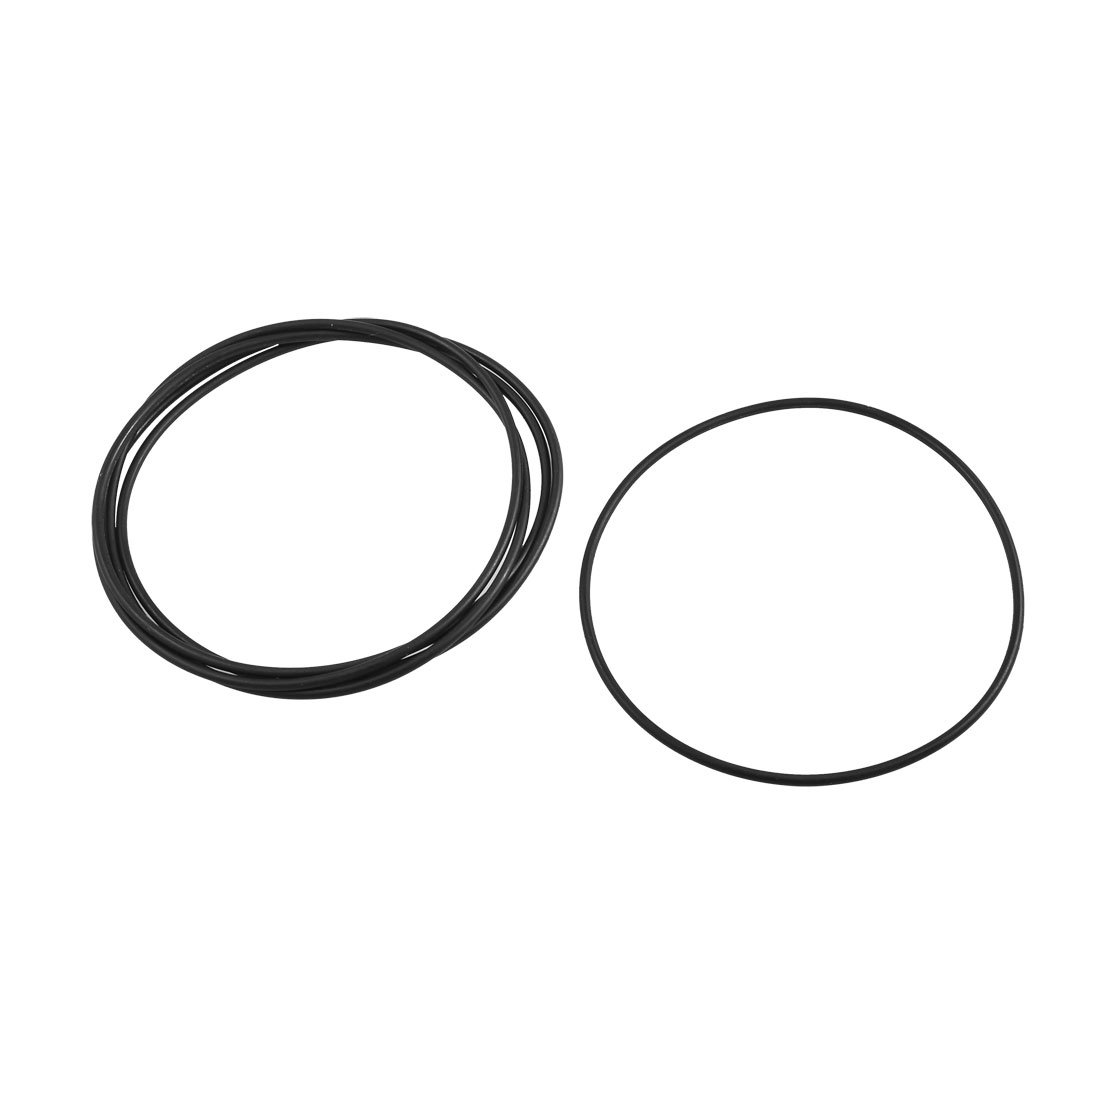 5 Pcs Mechanical Black Rubber O Ring Oil Seal Gaskets 95mm x 90mm x 2.4mm